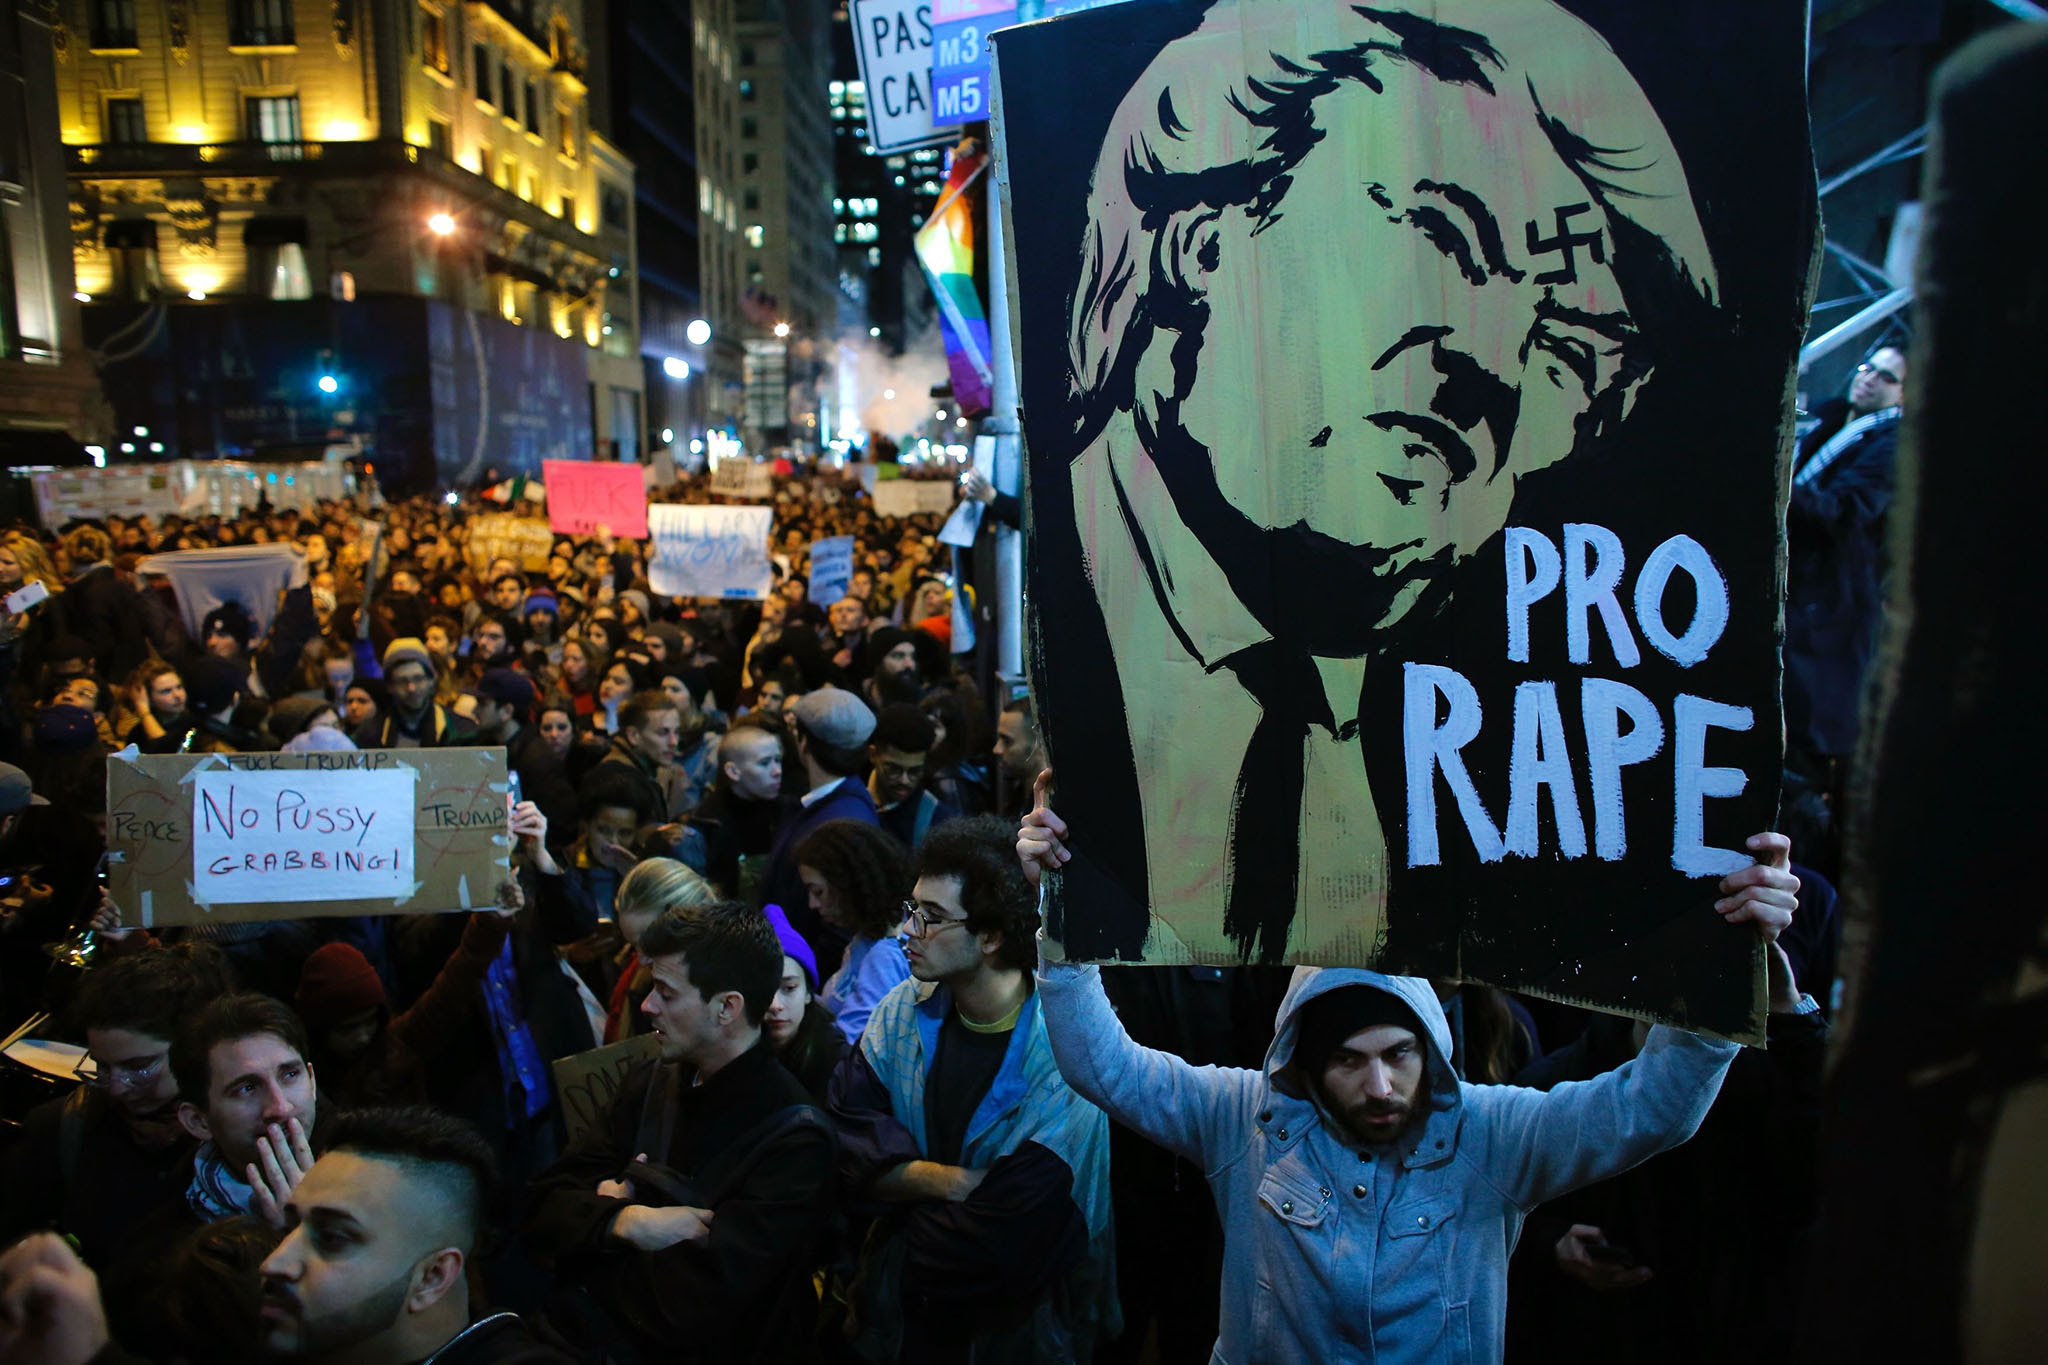 A man holds a poster as she takes part in a protest against President-elect Donald Trump in New York City on November 9, 2016. / AFP PHOTO / KENA BETANCURKENA BETANCUR/AFP/Getty Images